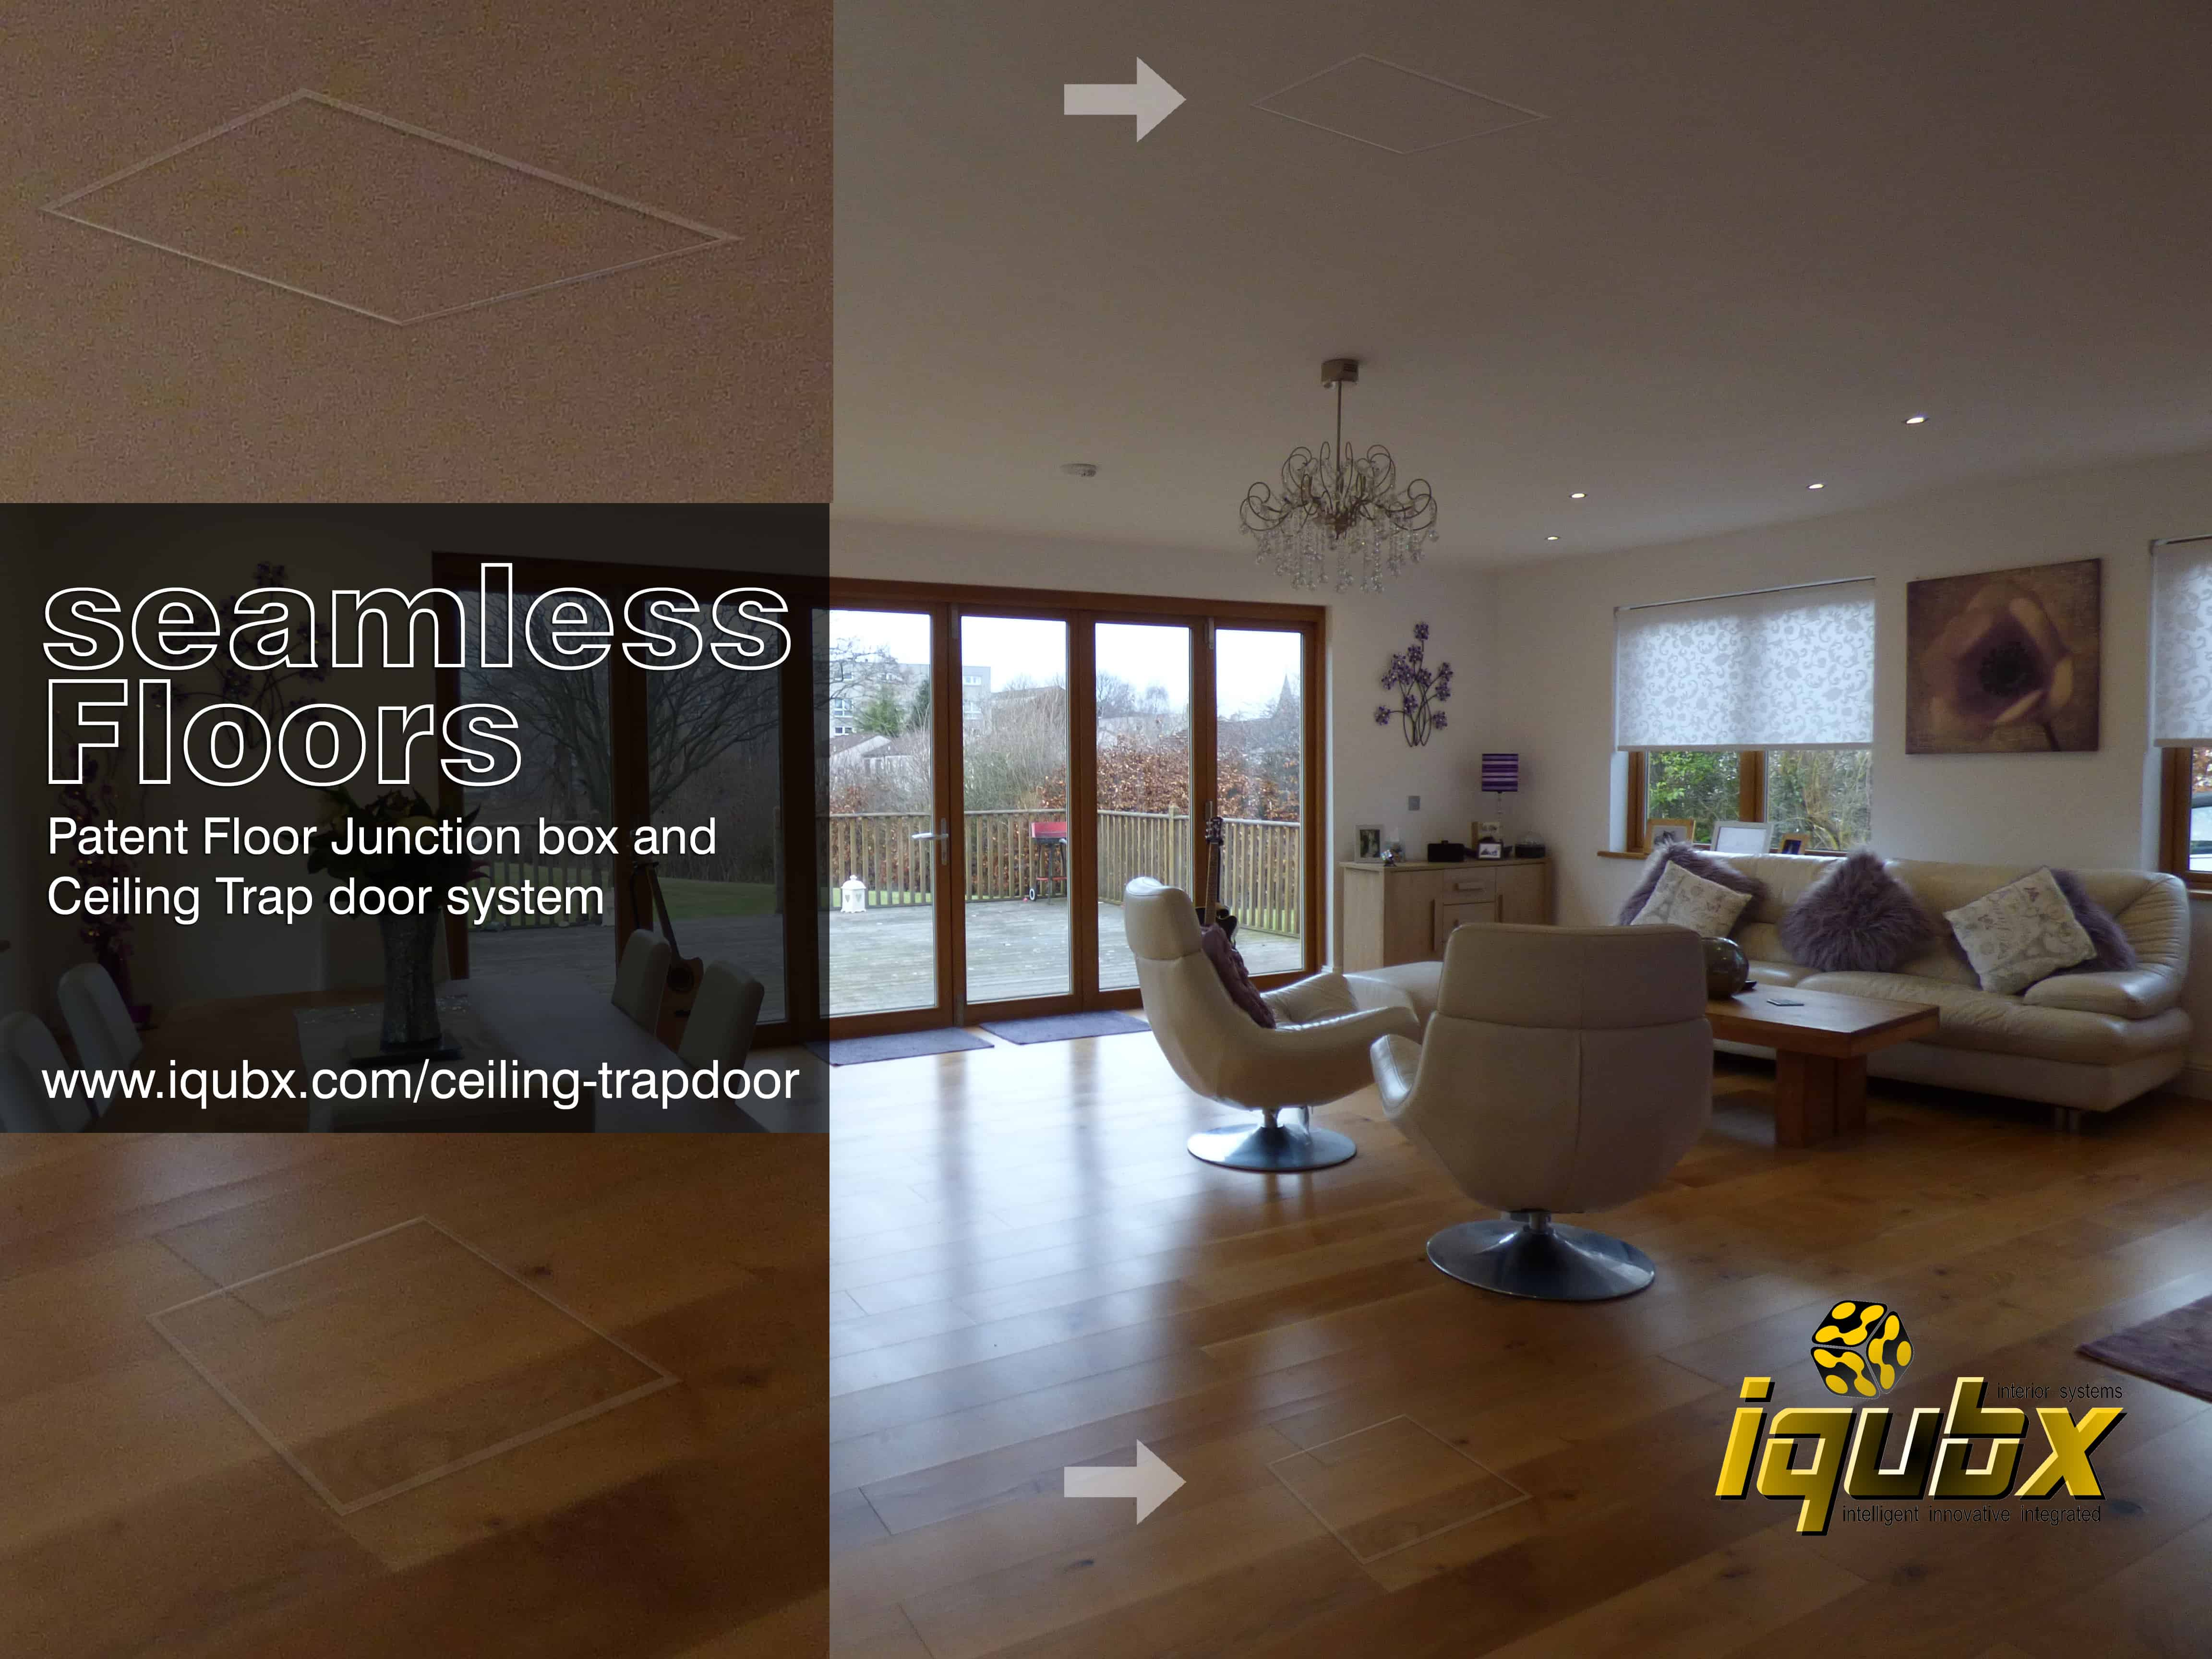 IQUBX ceiling trapdoor and floor junction box add uniform detailing to the interiors